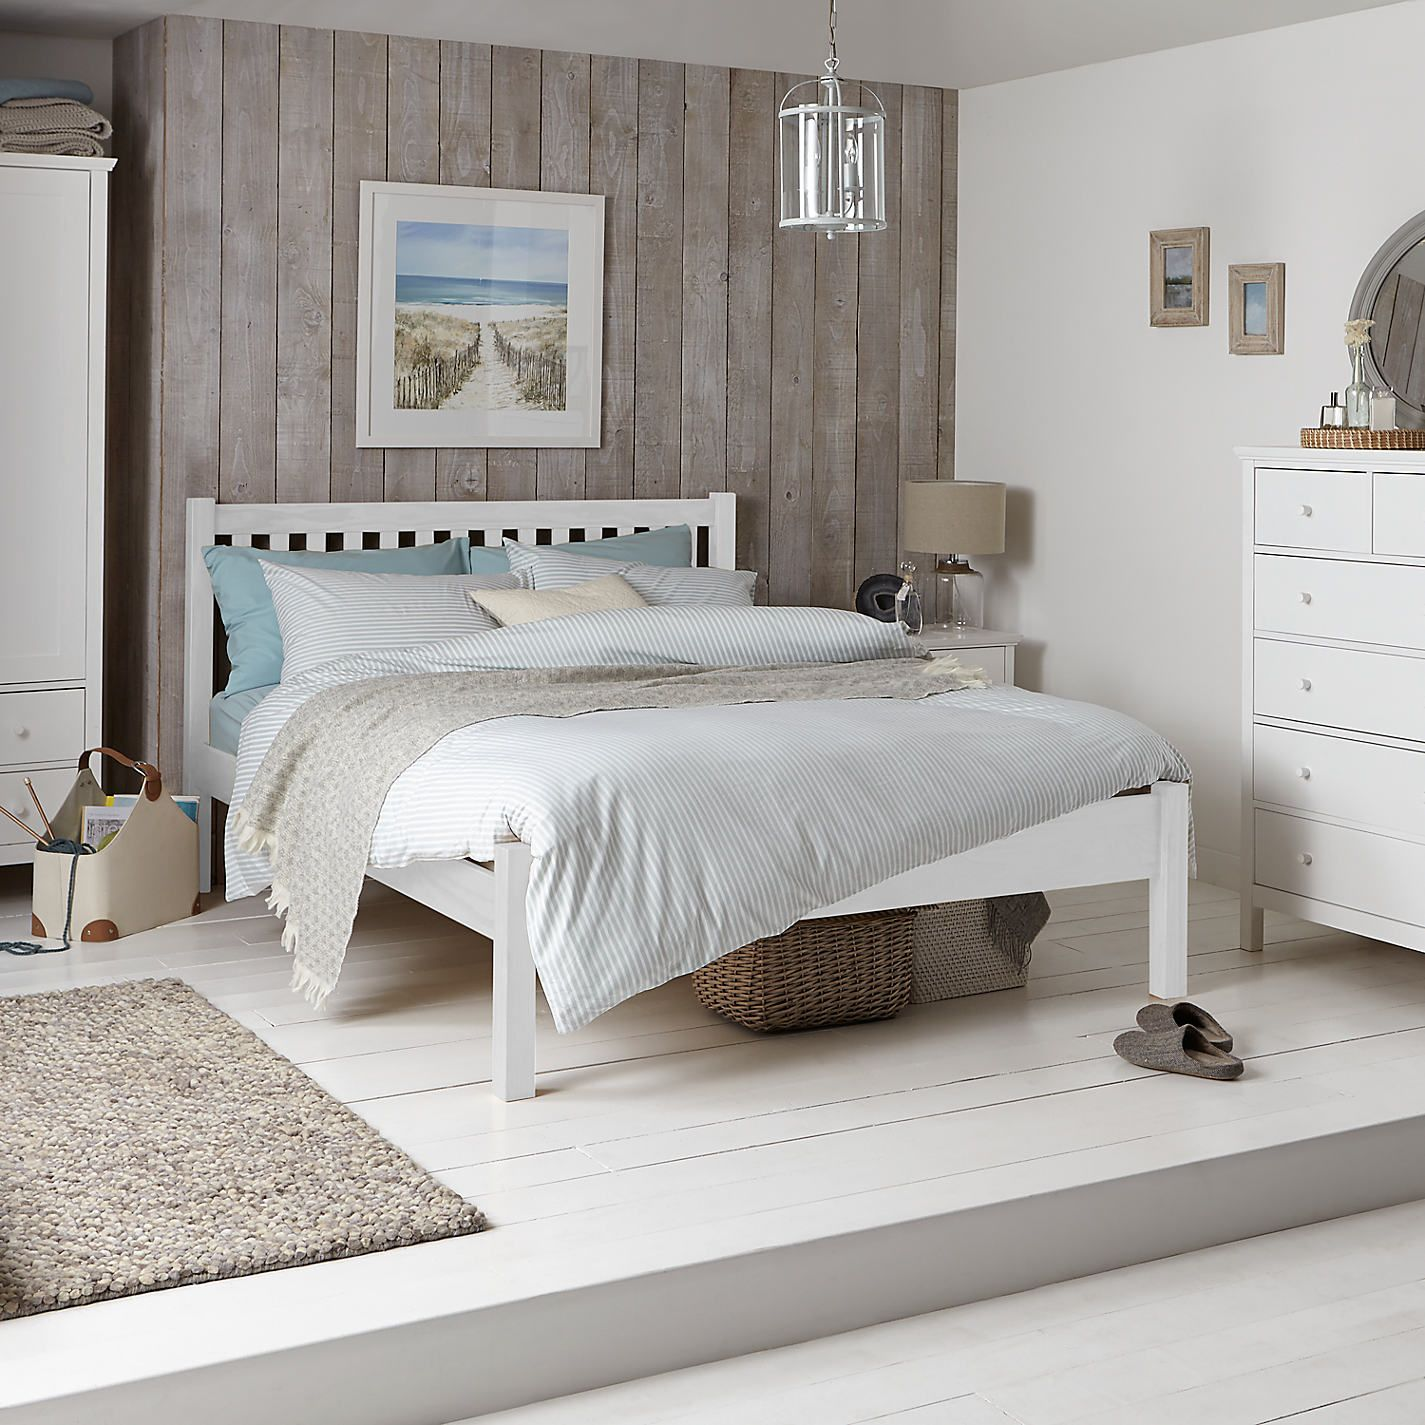 Exceptional Buy John Lewis Wilton Bedroom Range From Our Bedroom Furniture Ranges Range  At John Lewis. Free Delivery On Orders Over